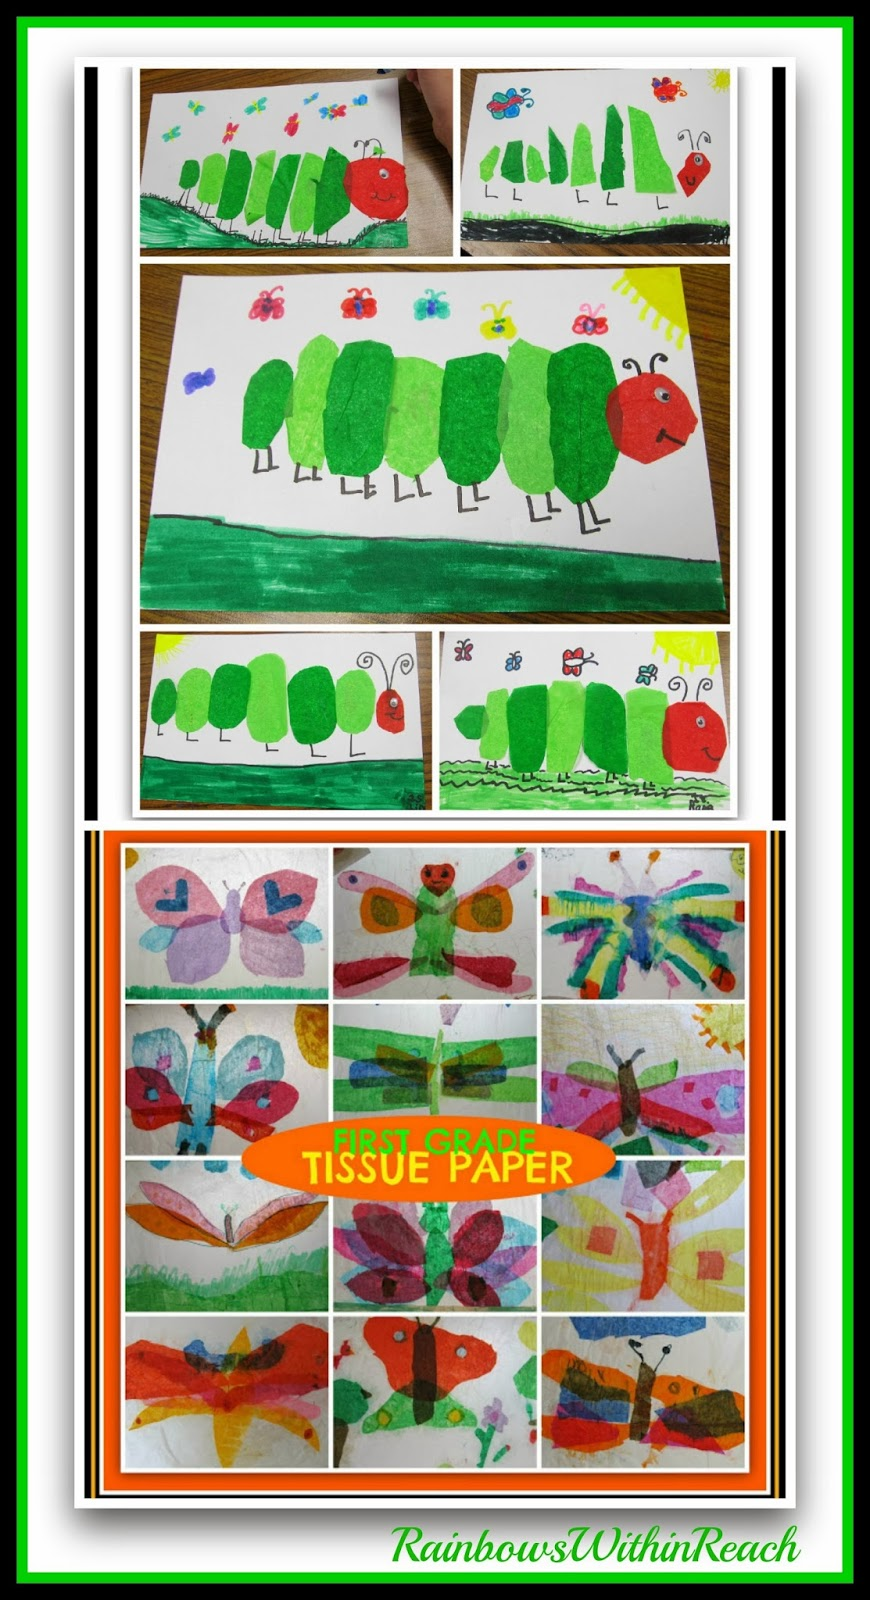 Tissue Paper Children's Art (Eric Carle style) via RainbowsWithinReach